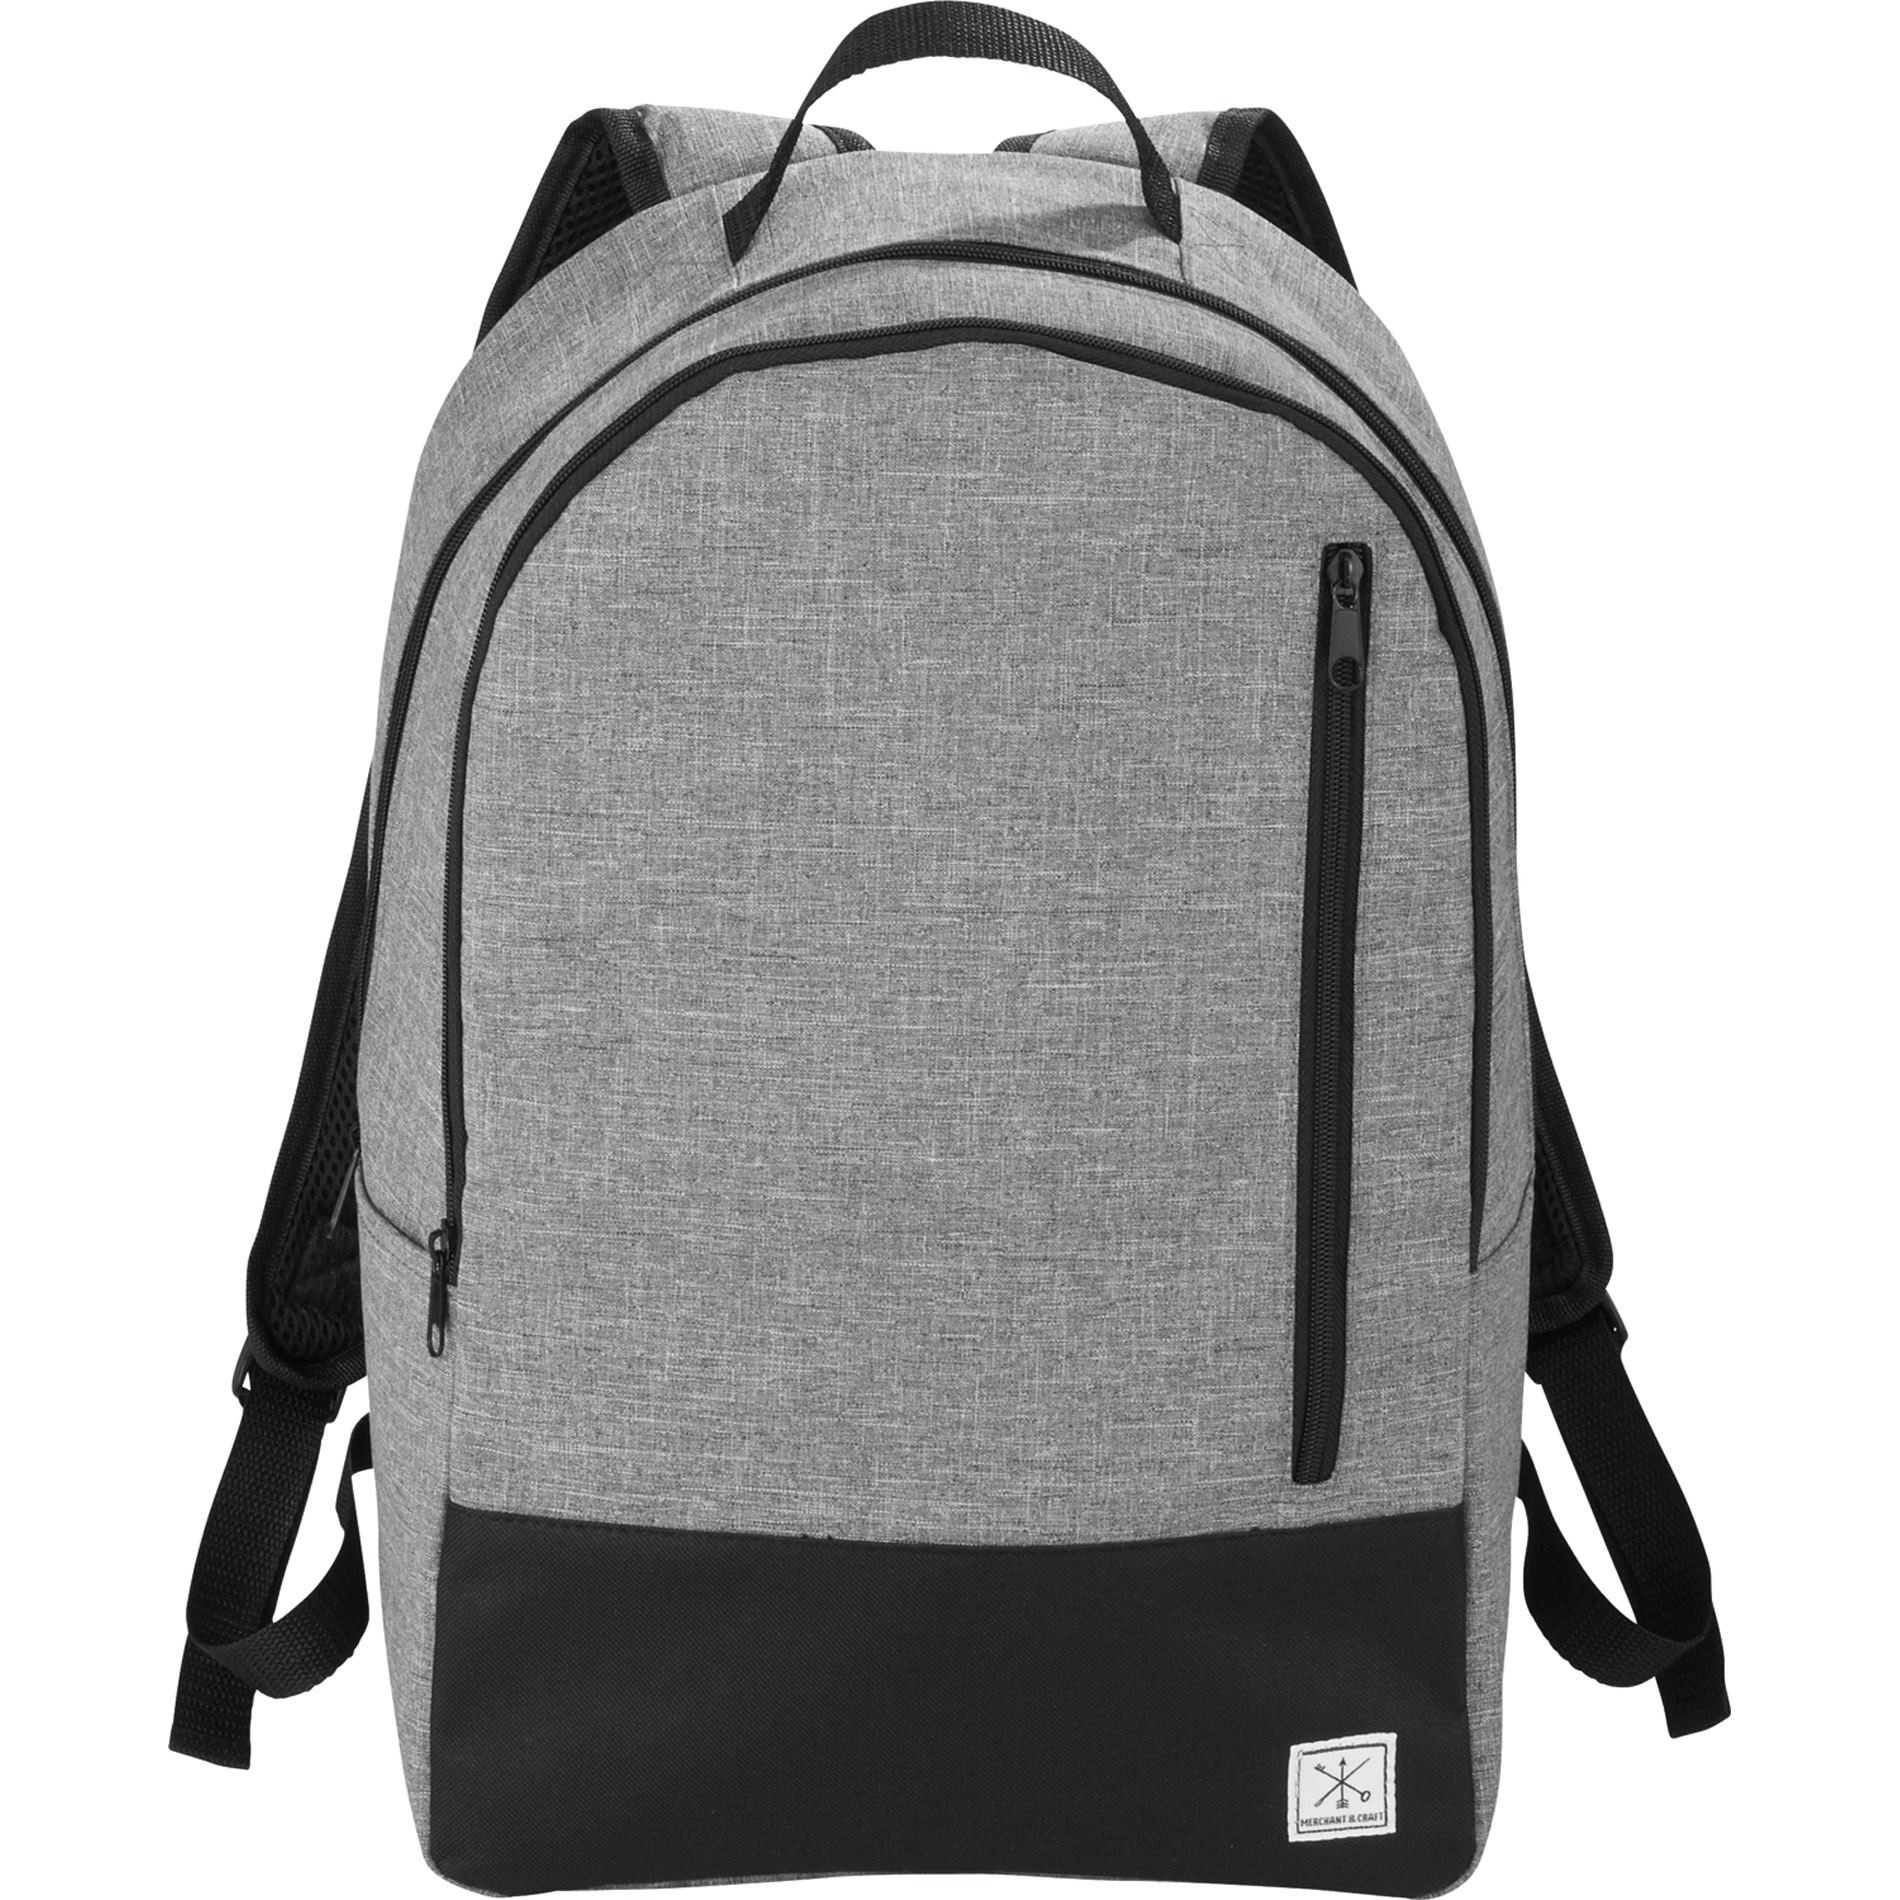 "Merchant & Craft 3750-16 - Grayley 15"" Computer Backpack"